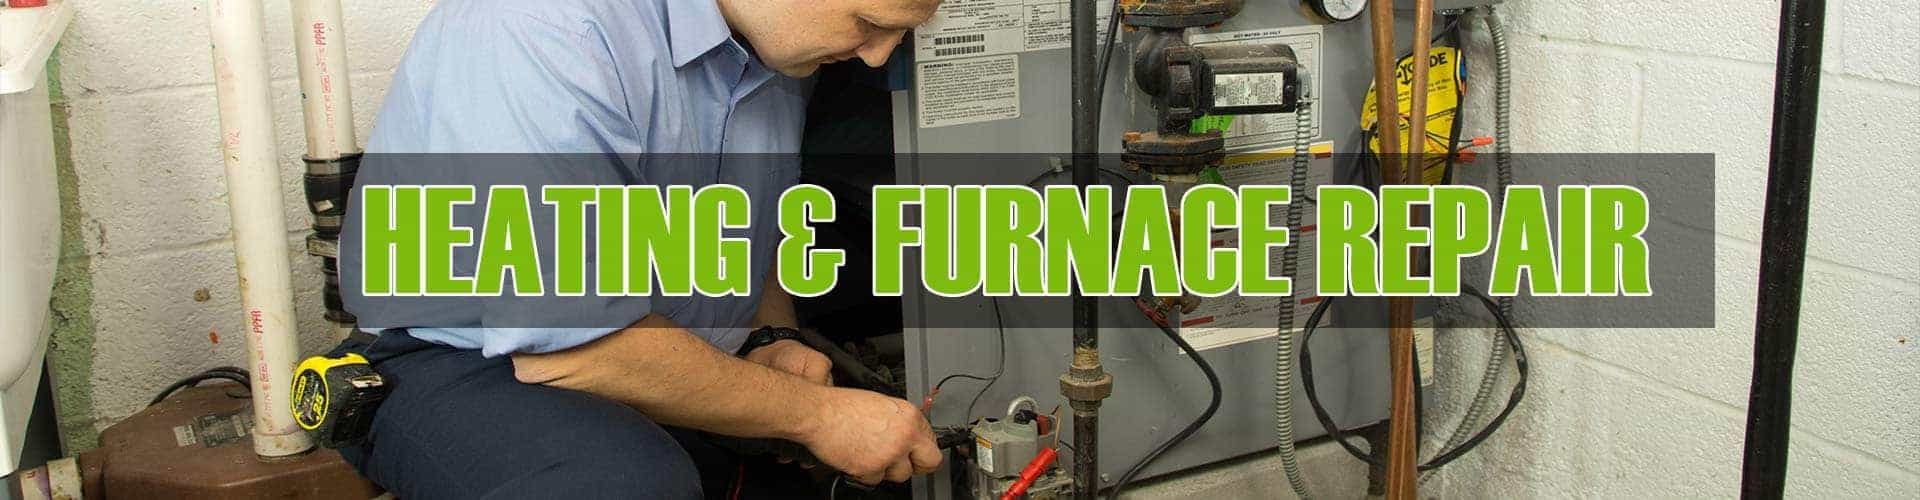 Furnace & Heating Repair in Elgin, Illinois